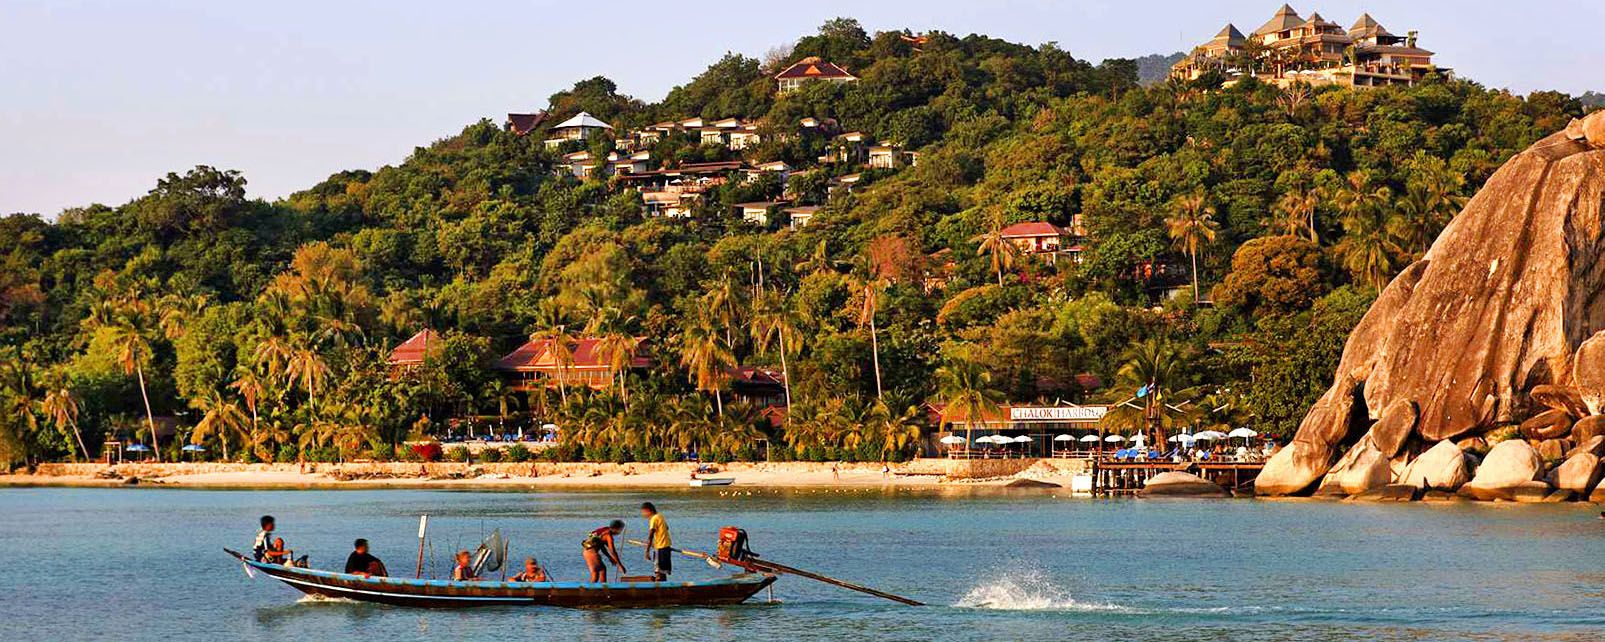 Boats in the village of Thong Sala, Koh Tao, Coasts, Thailand